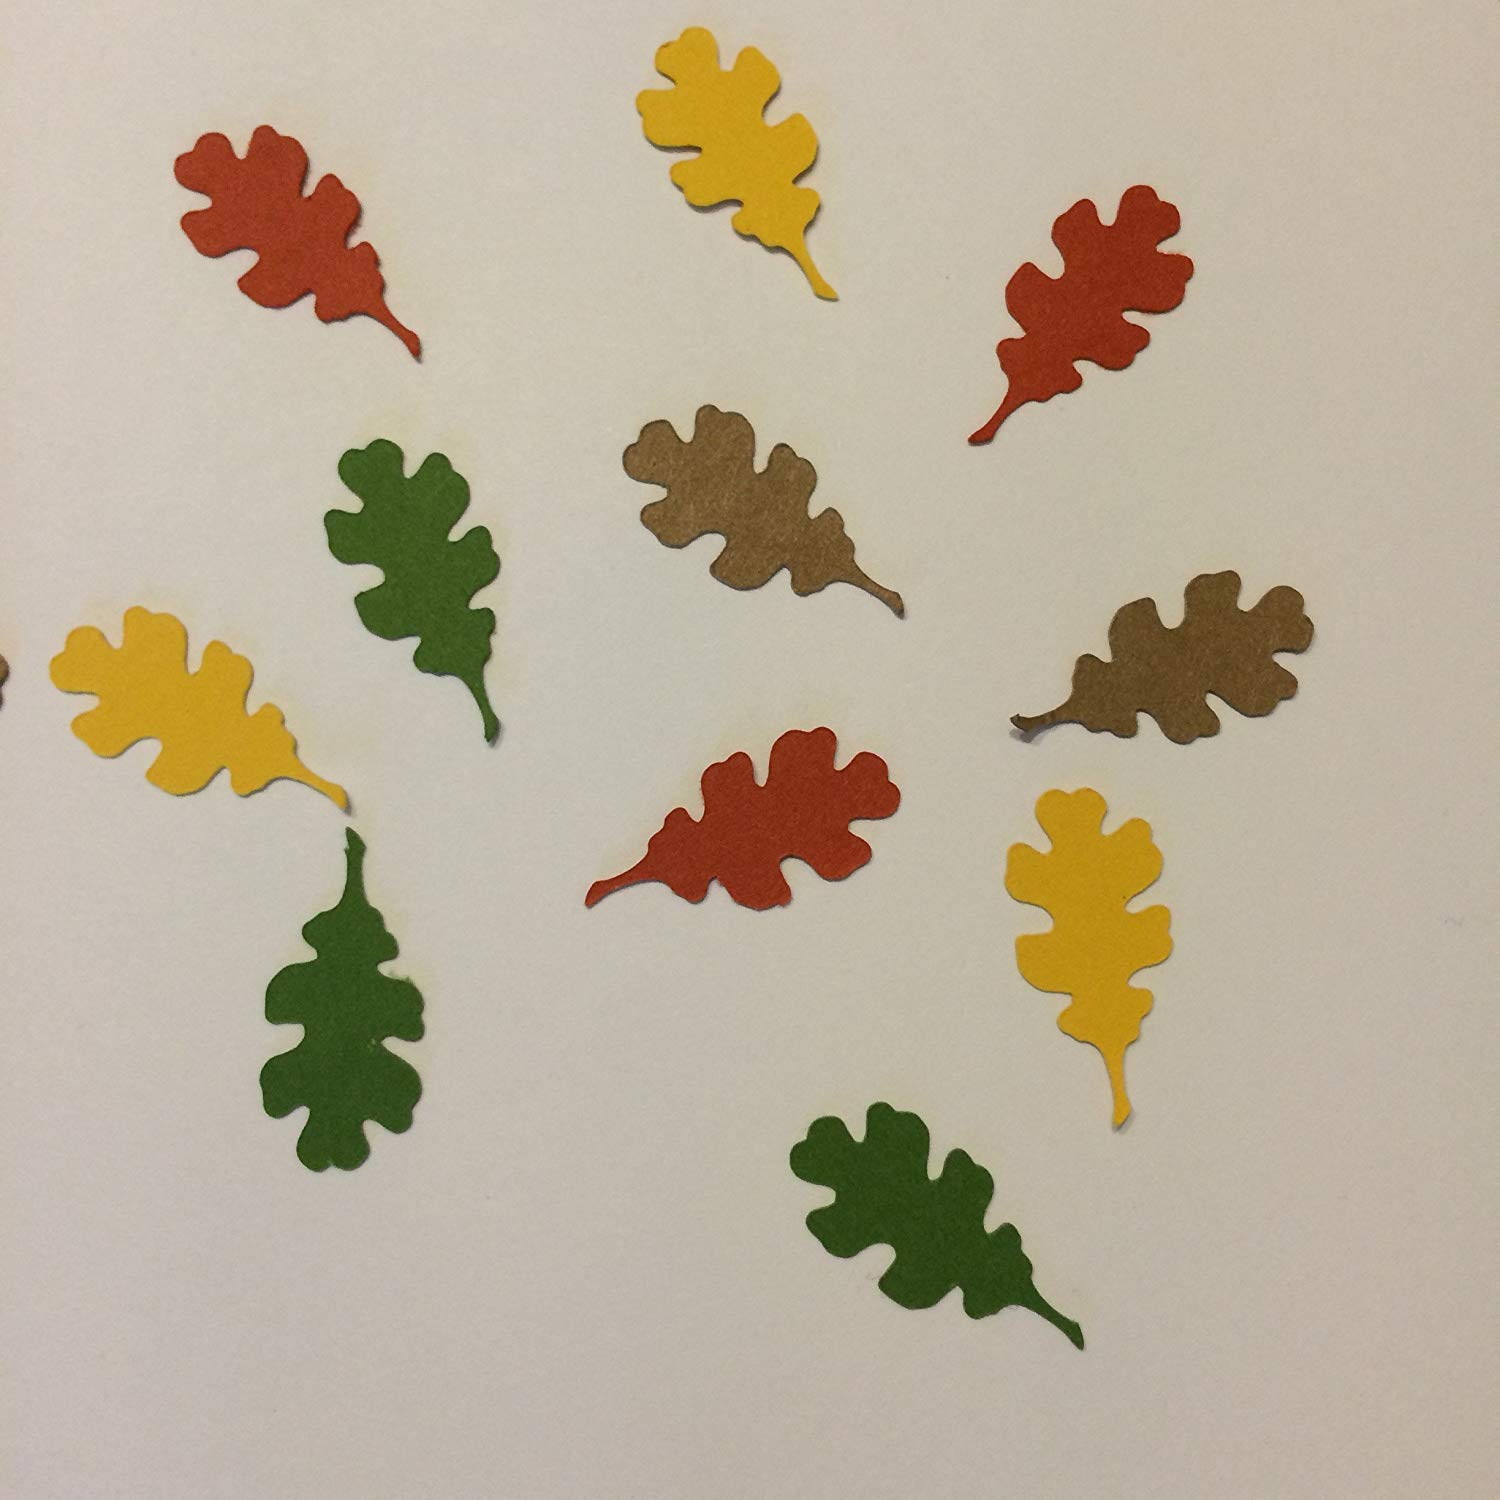 1in Confetti Set, Oak Leaf Cut Outs, Fall Decorations, Autumn Decorations, Thanksgiving Party Supplies, Thanksgiving Party Supplies, Halloween Decorations, Rustic Confetti, Oak Leaf Decorations